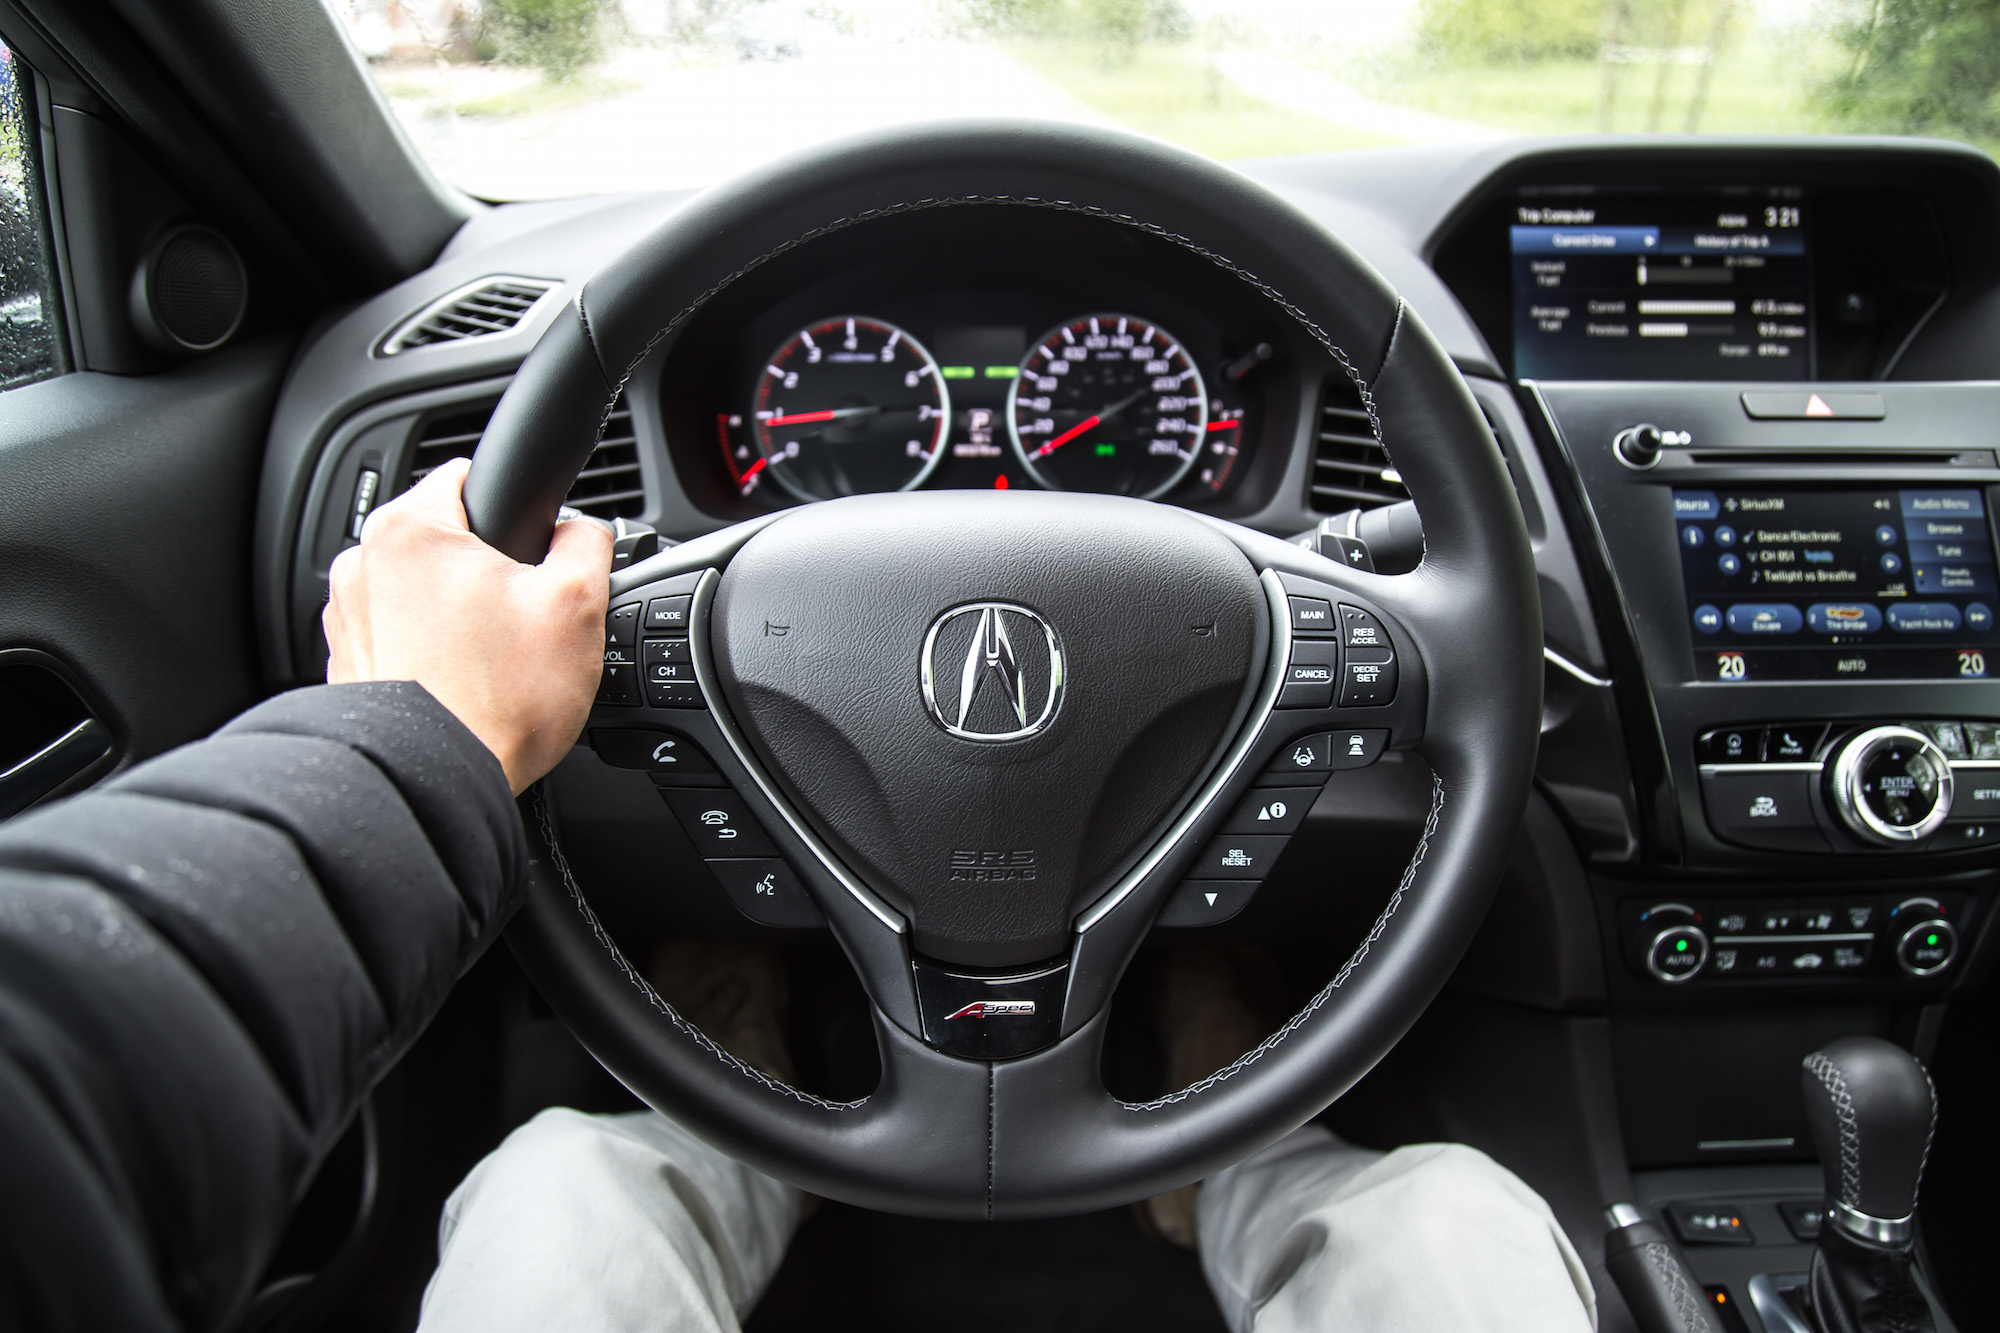 What Transmission Is In My Car >> Review: 2019 Acura ILX A-Spec | CAR